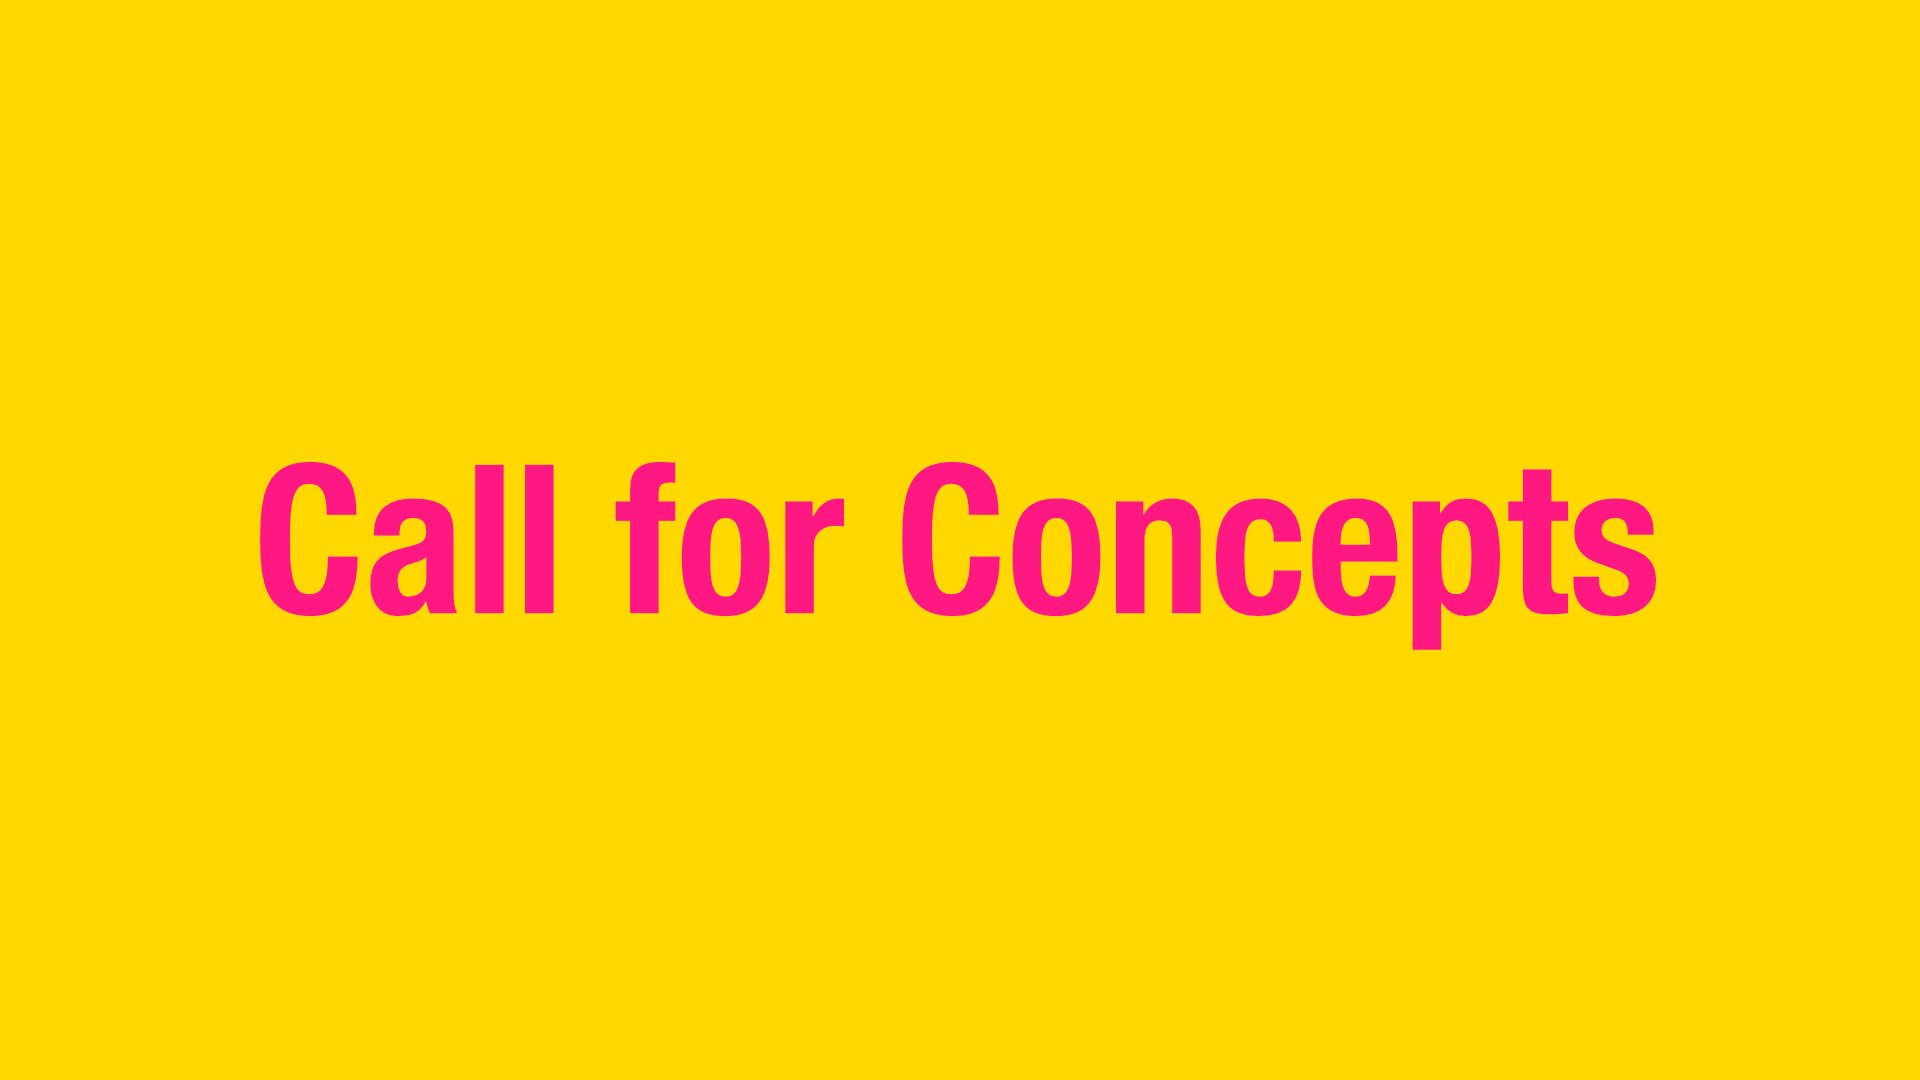 Call for Concepts